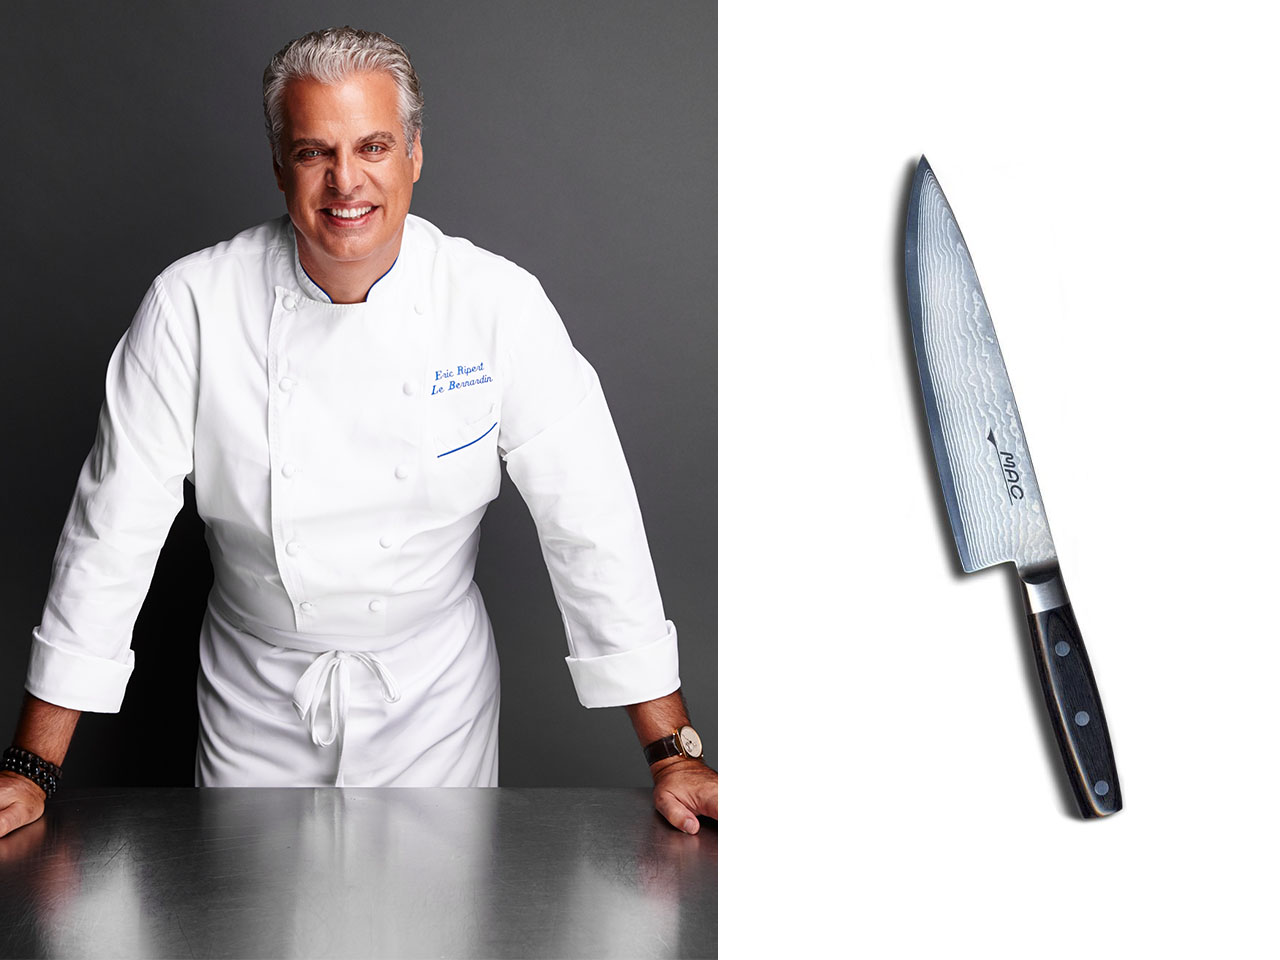 american made kitchen knives curio cabinet the best chef s according to 10 of chefs in america eric ripert mac knife